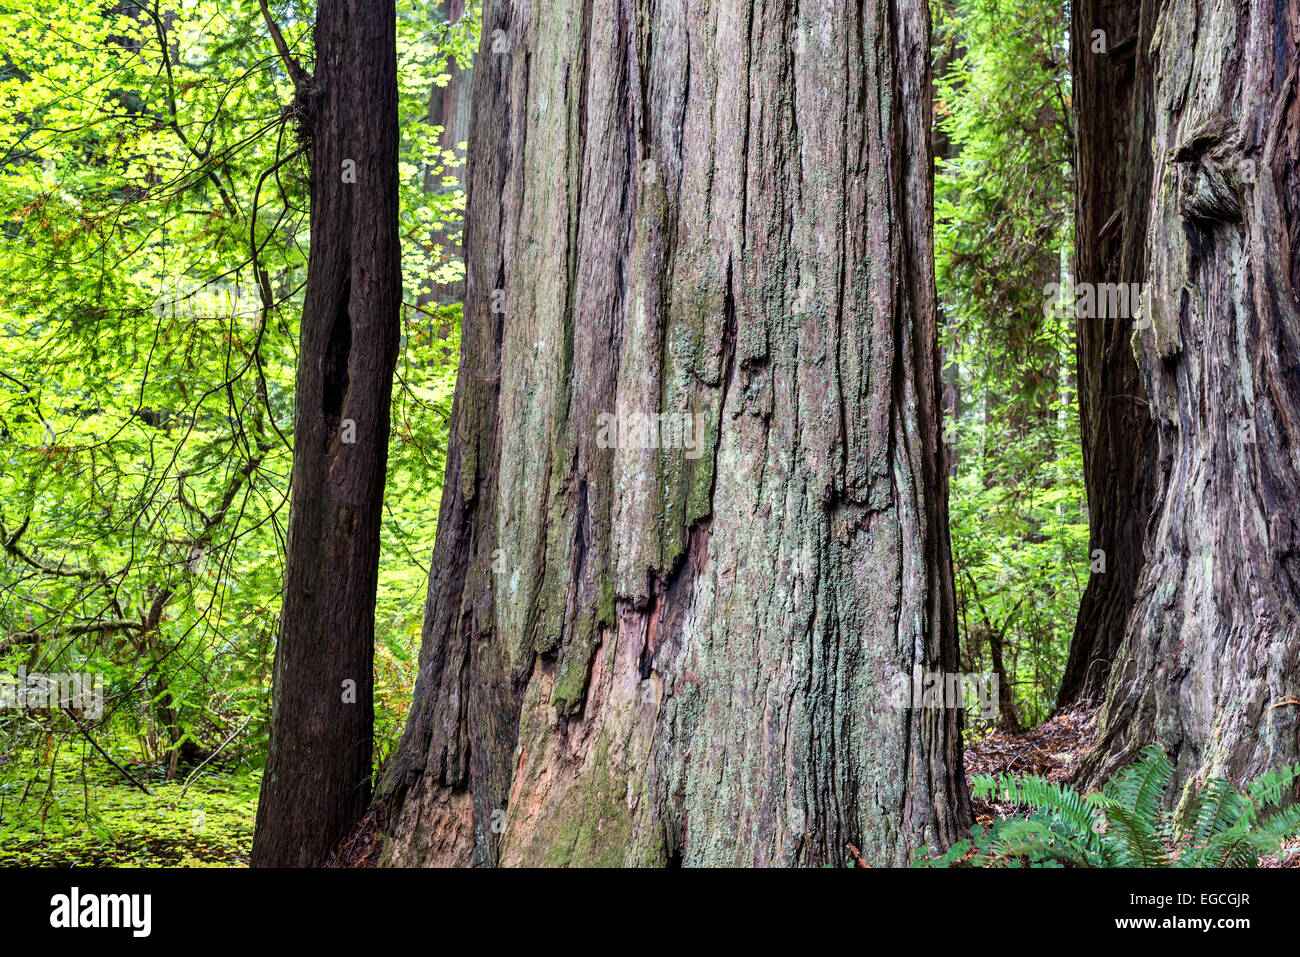 Giant redwood trees. Jedediah Smith Redwoods State Park, California, United States. - Stock Image